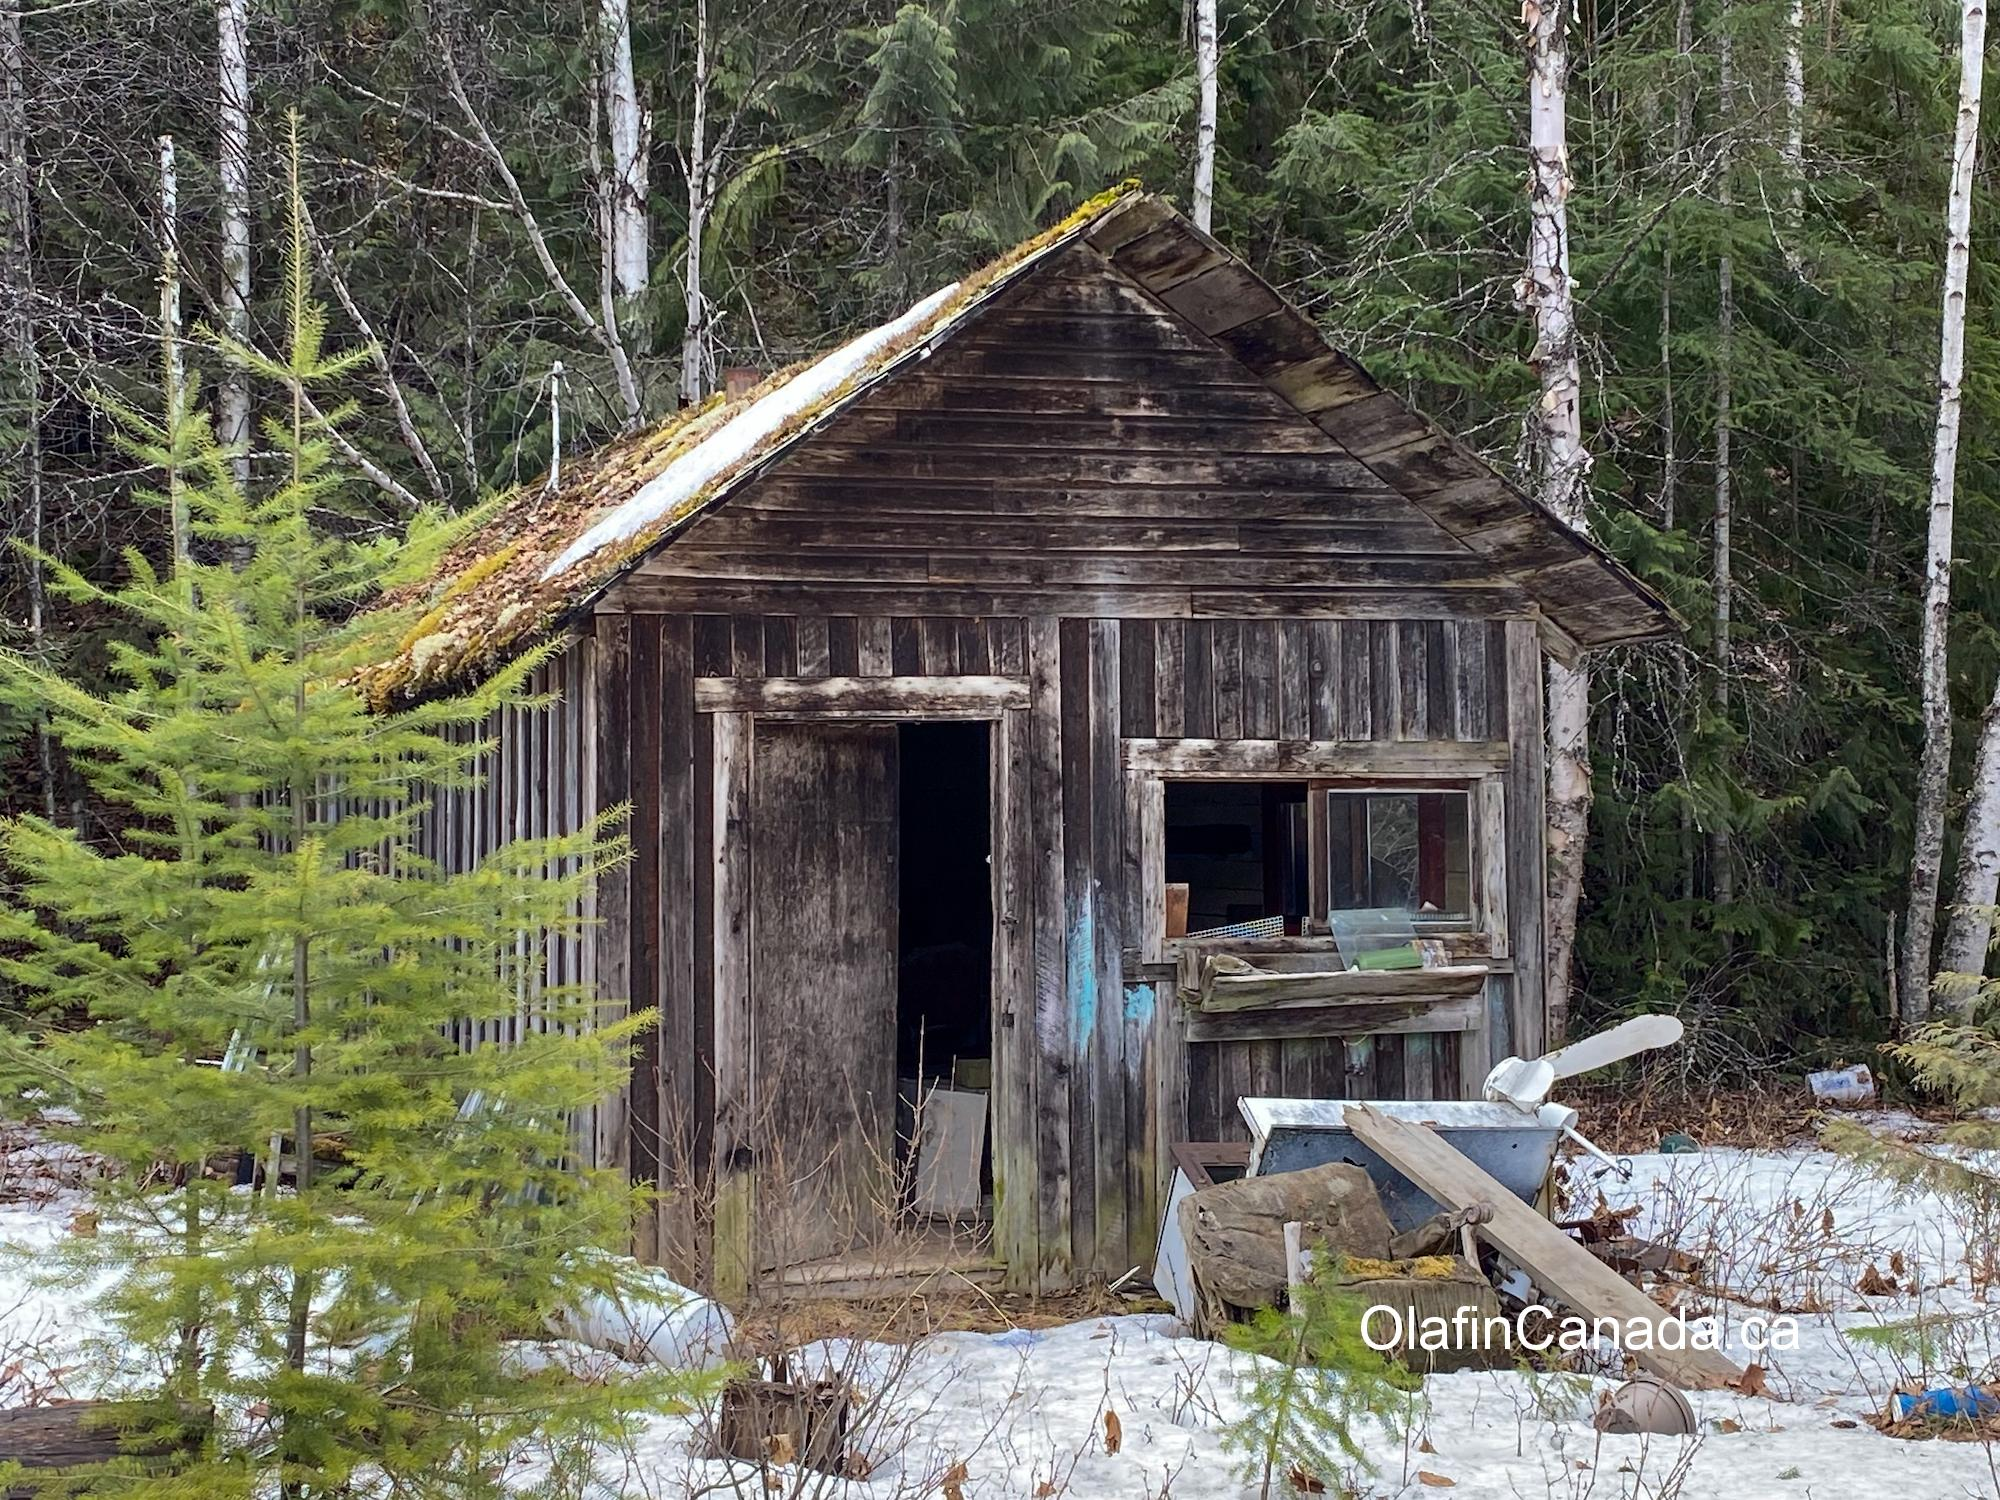 Abandoned old cabin on Stanley Flats in East Blackpool, near Clearwater #olafincanada #britishcolumbia #discoverbc #abandoned #cabin